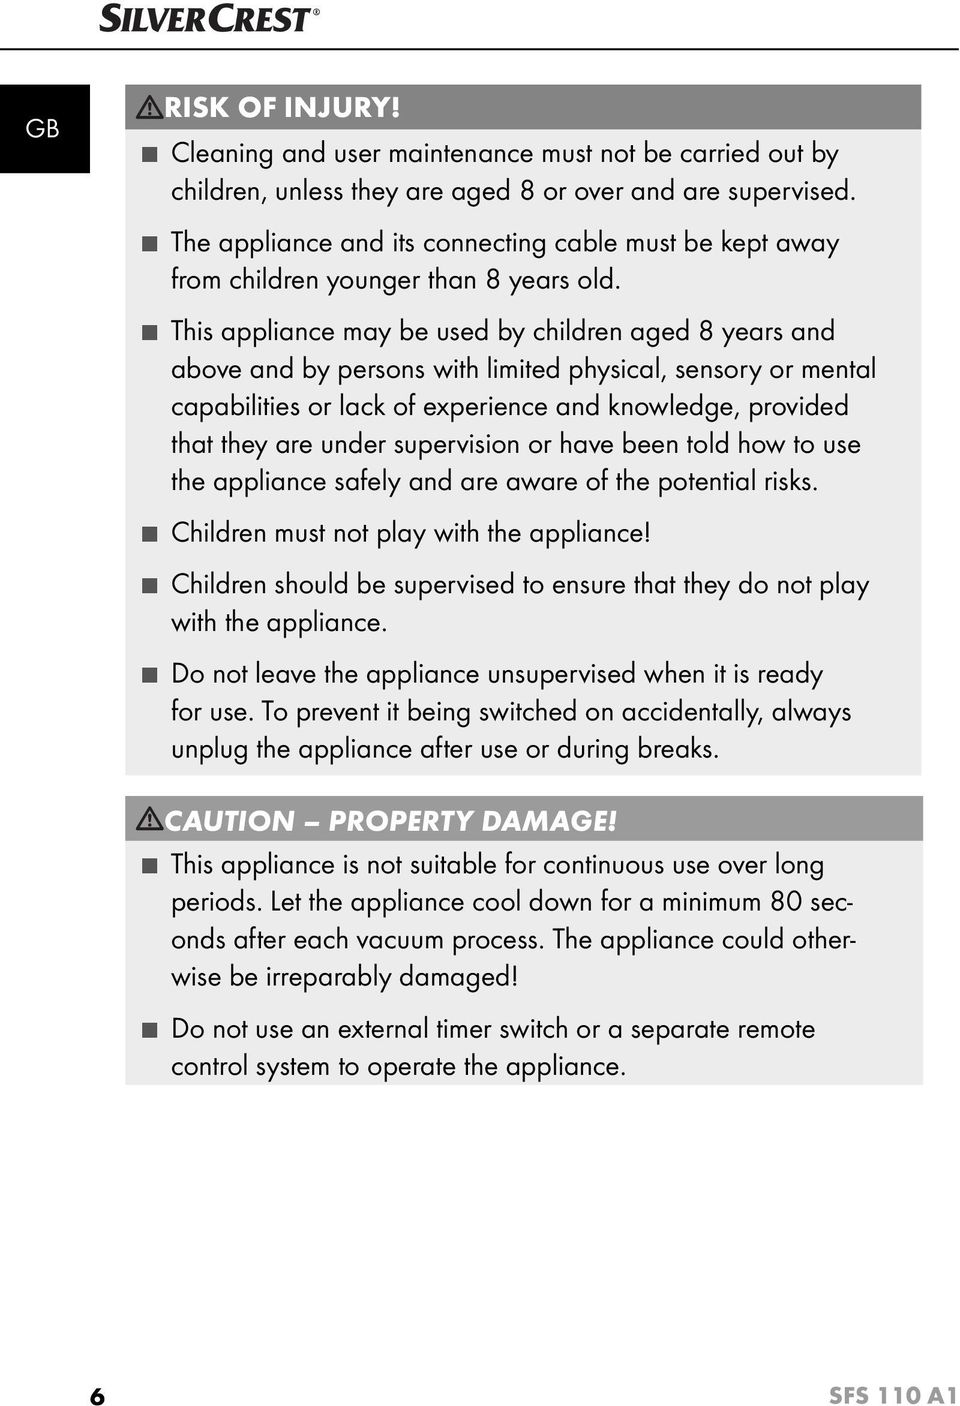 This appliance may be used by children aged 8 years and above and by persons with limited physical, sensory or mental capabilities or lack of experience and knowledge, provided that they are under